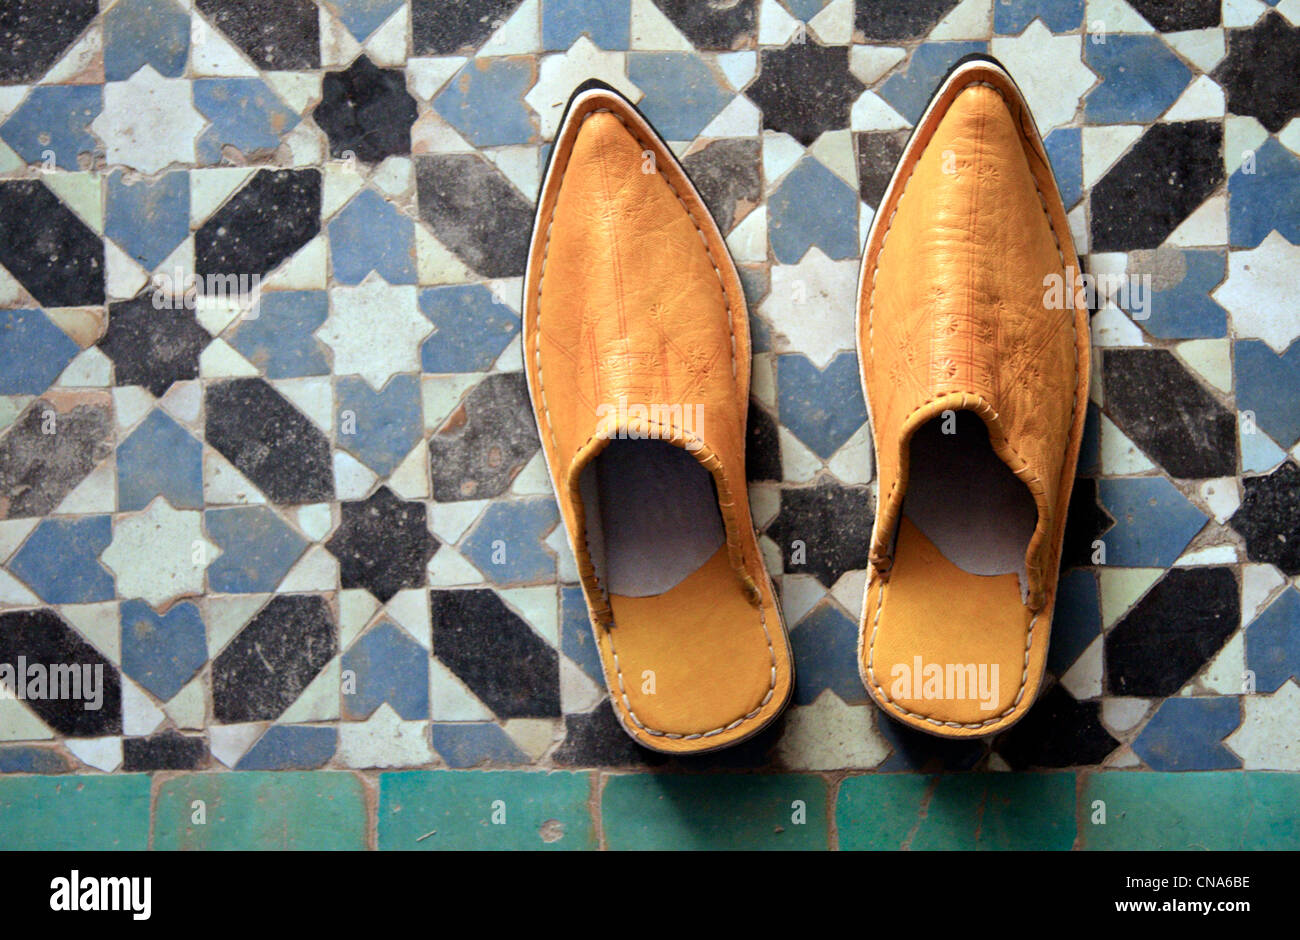 A pair of traditional Moroccan slipper-shoes (babouches) against traditional mosaic tilework (zellij) in Marrakech, - Stock Image